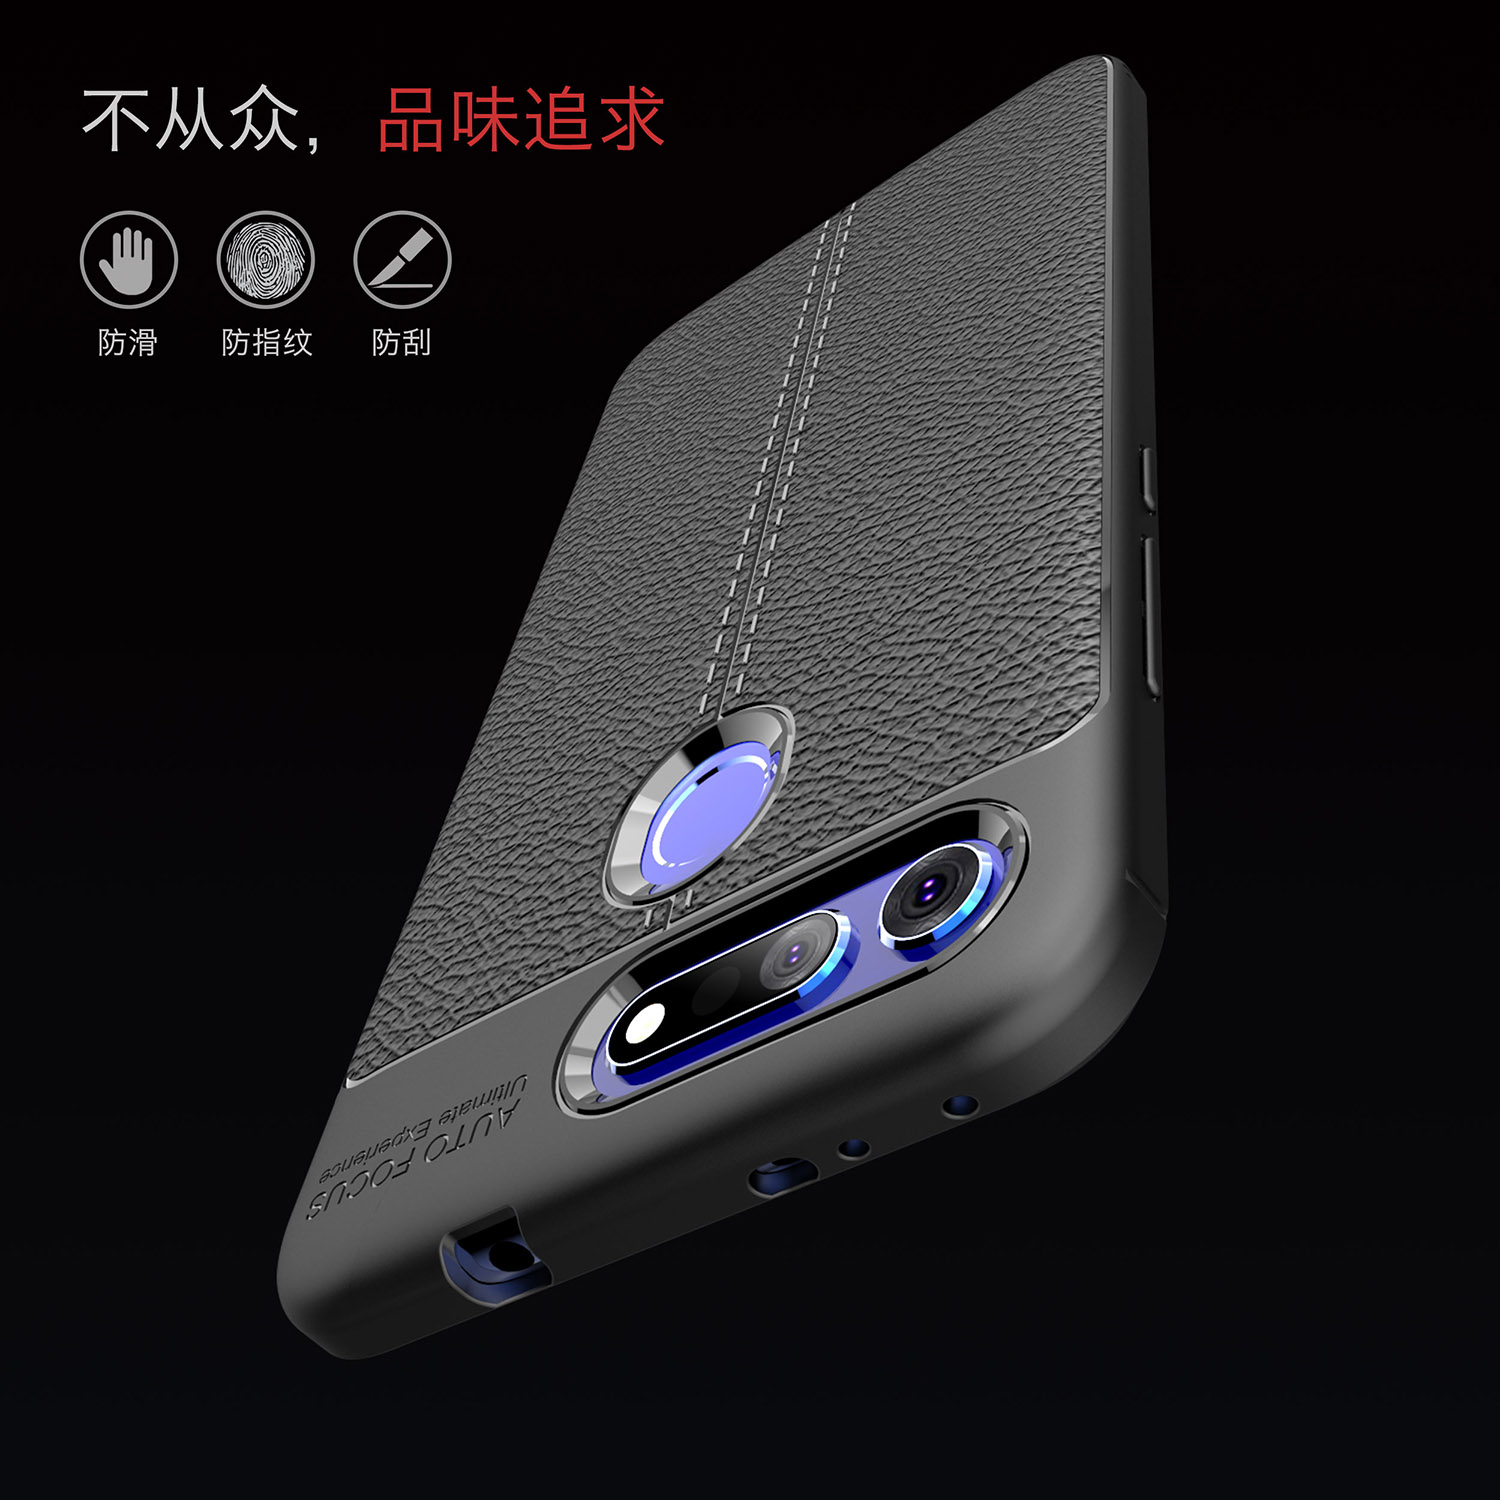 Soft TPU Case Huawei Honor View 20 Case Leather Texture Silicone Phone Cover For Huawei Honor View 20 Coque Honor V20 Wolfsay in Fitted Cases from Cellphones Telecommunications